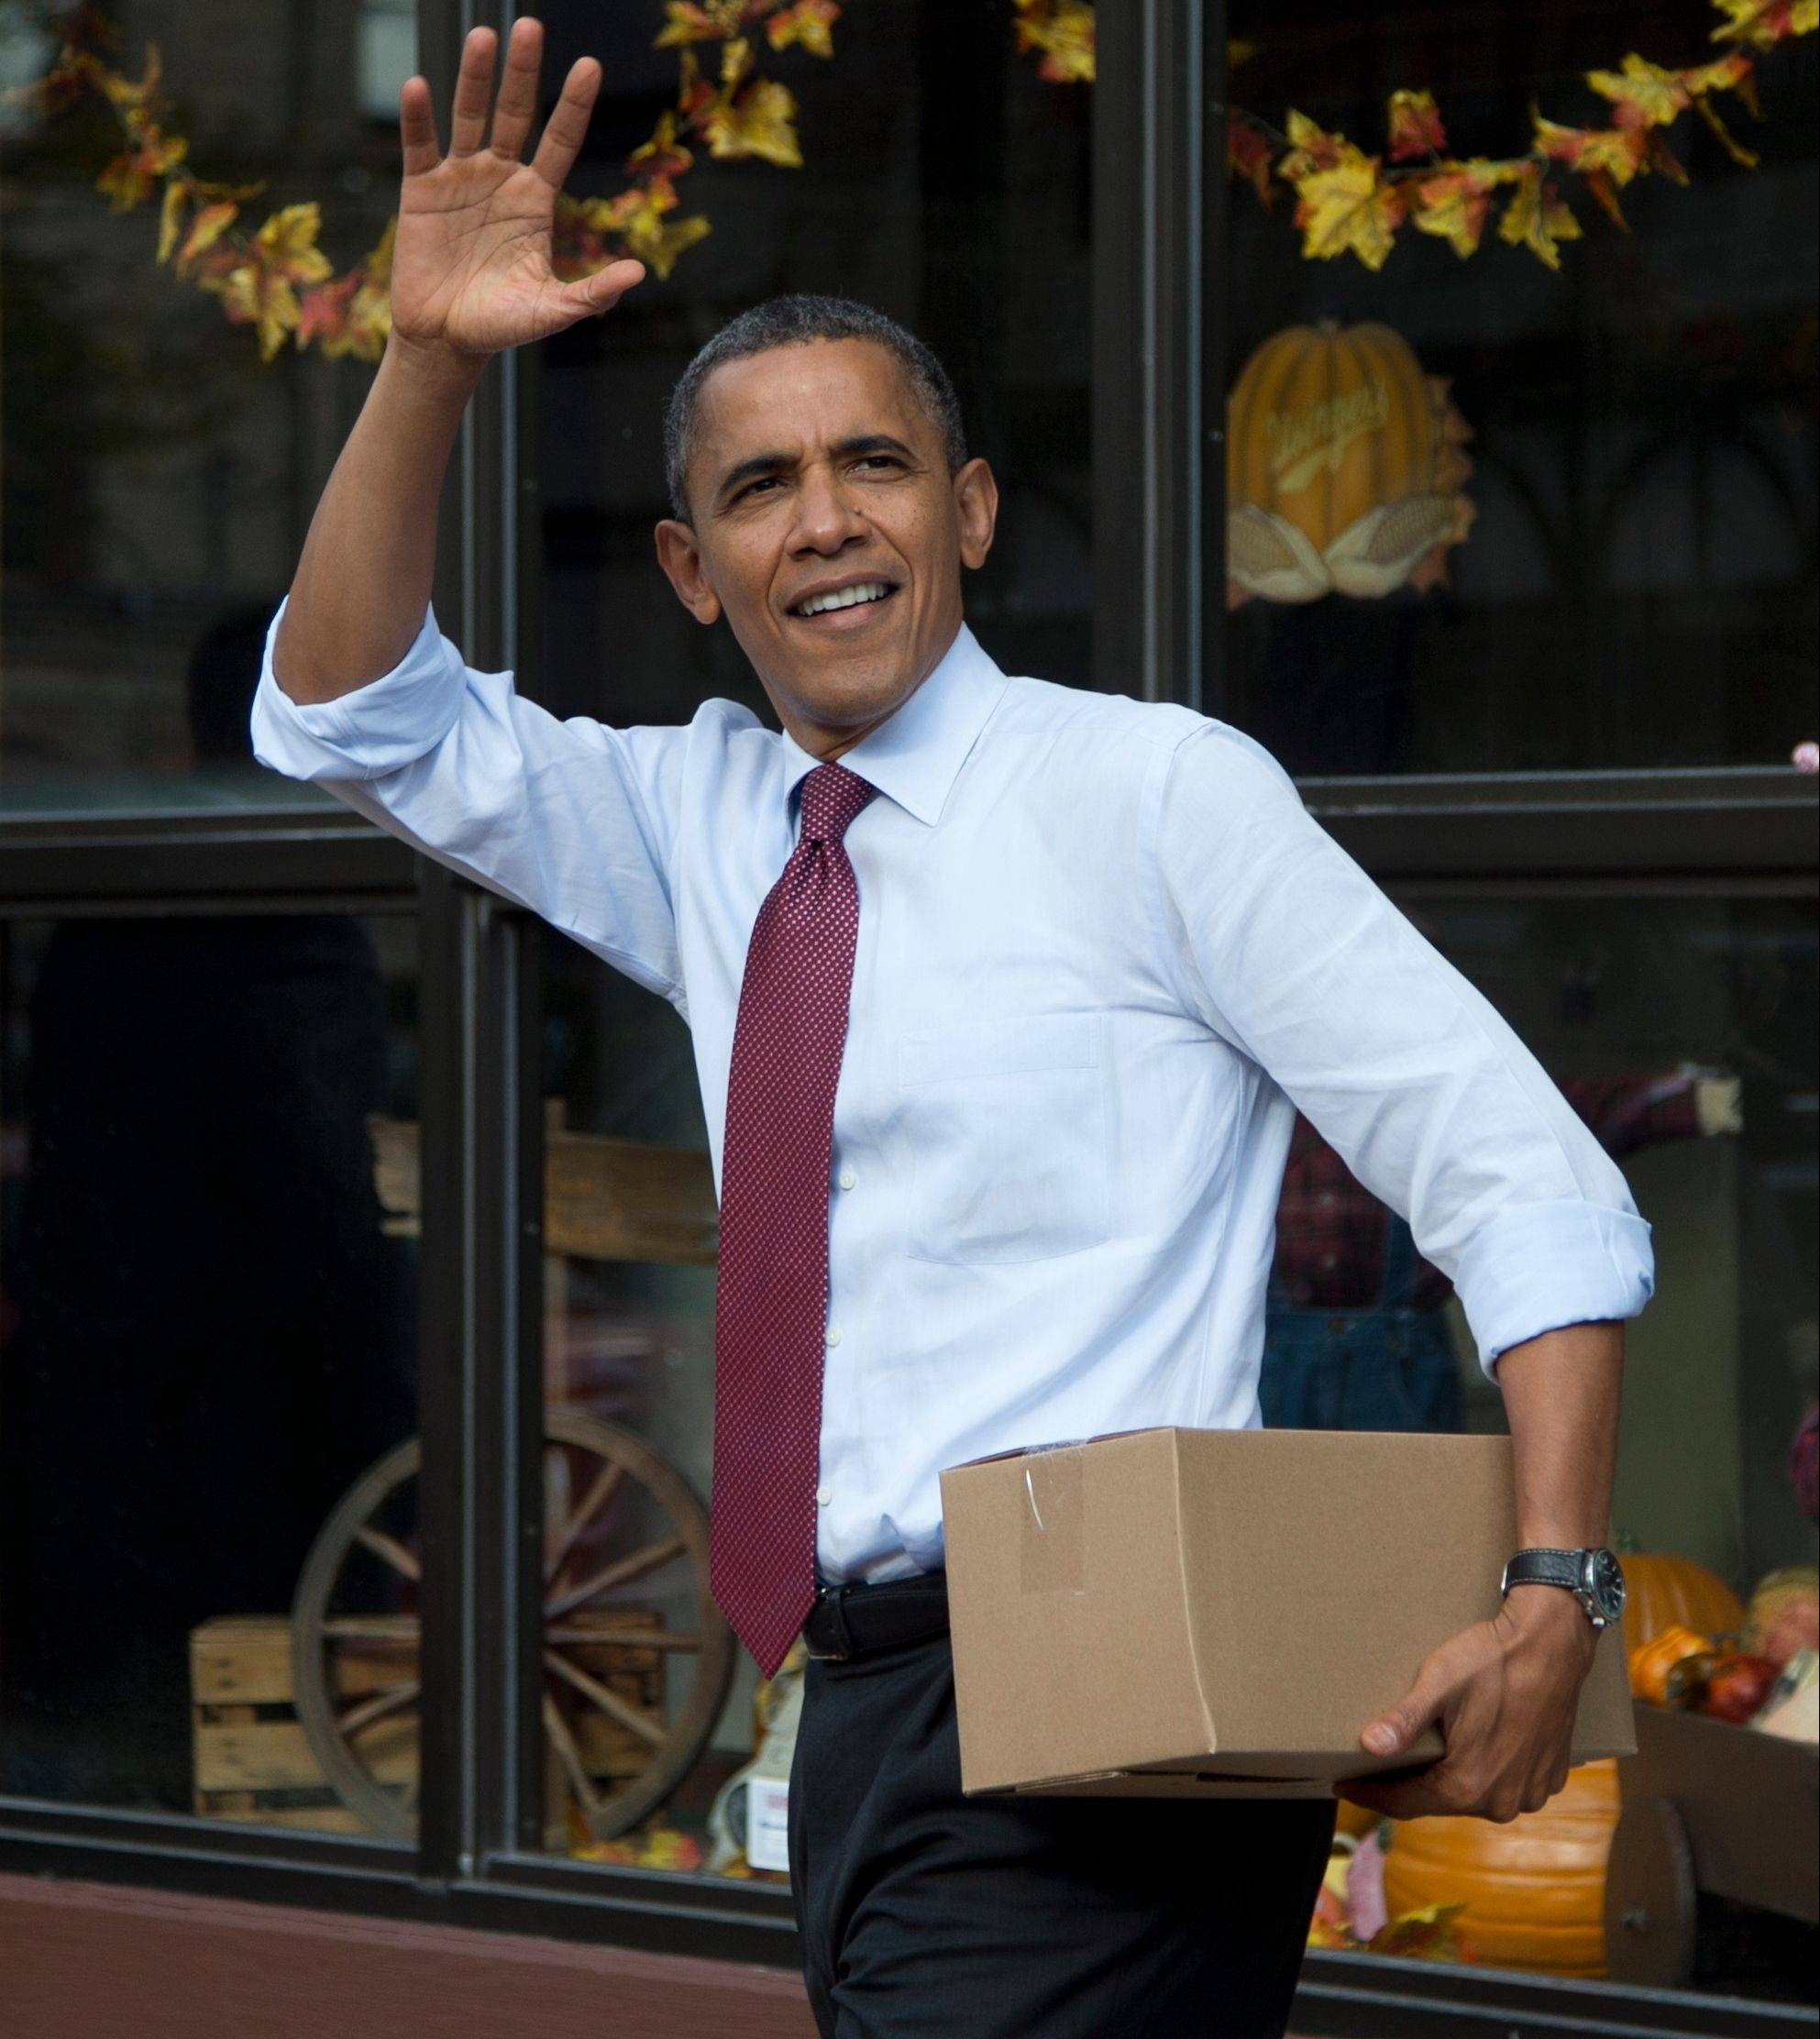 Like his Republican rival Mitt Romney, President Barack Obama is trying to coax undecided voters to side with him � even if it takes buying a box of bratwurst sausages, as Obama is seen doing above Saturday in Milwaukee.